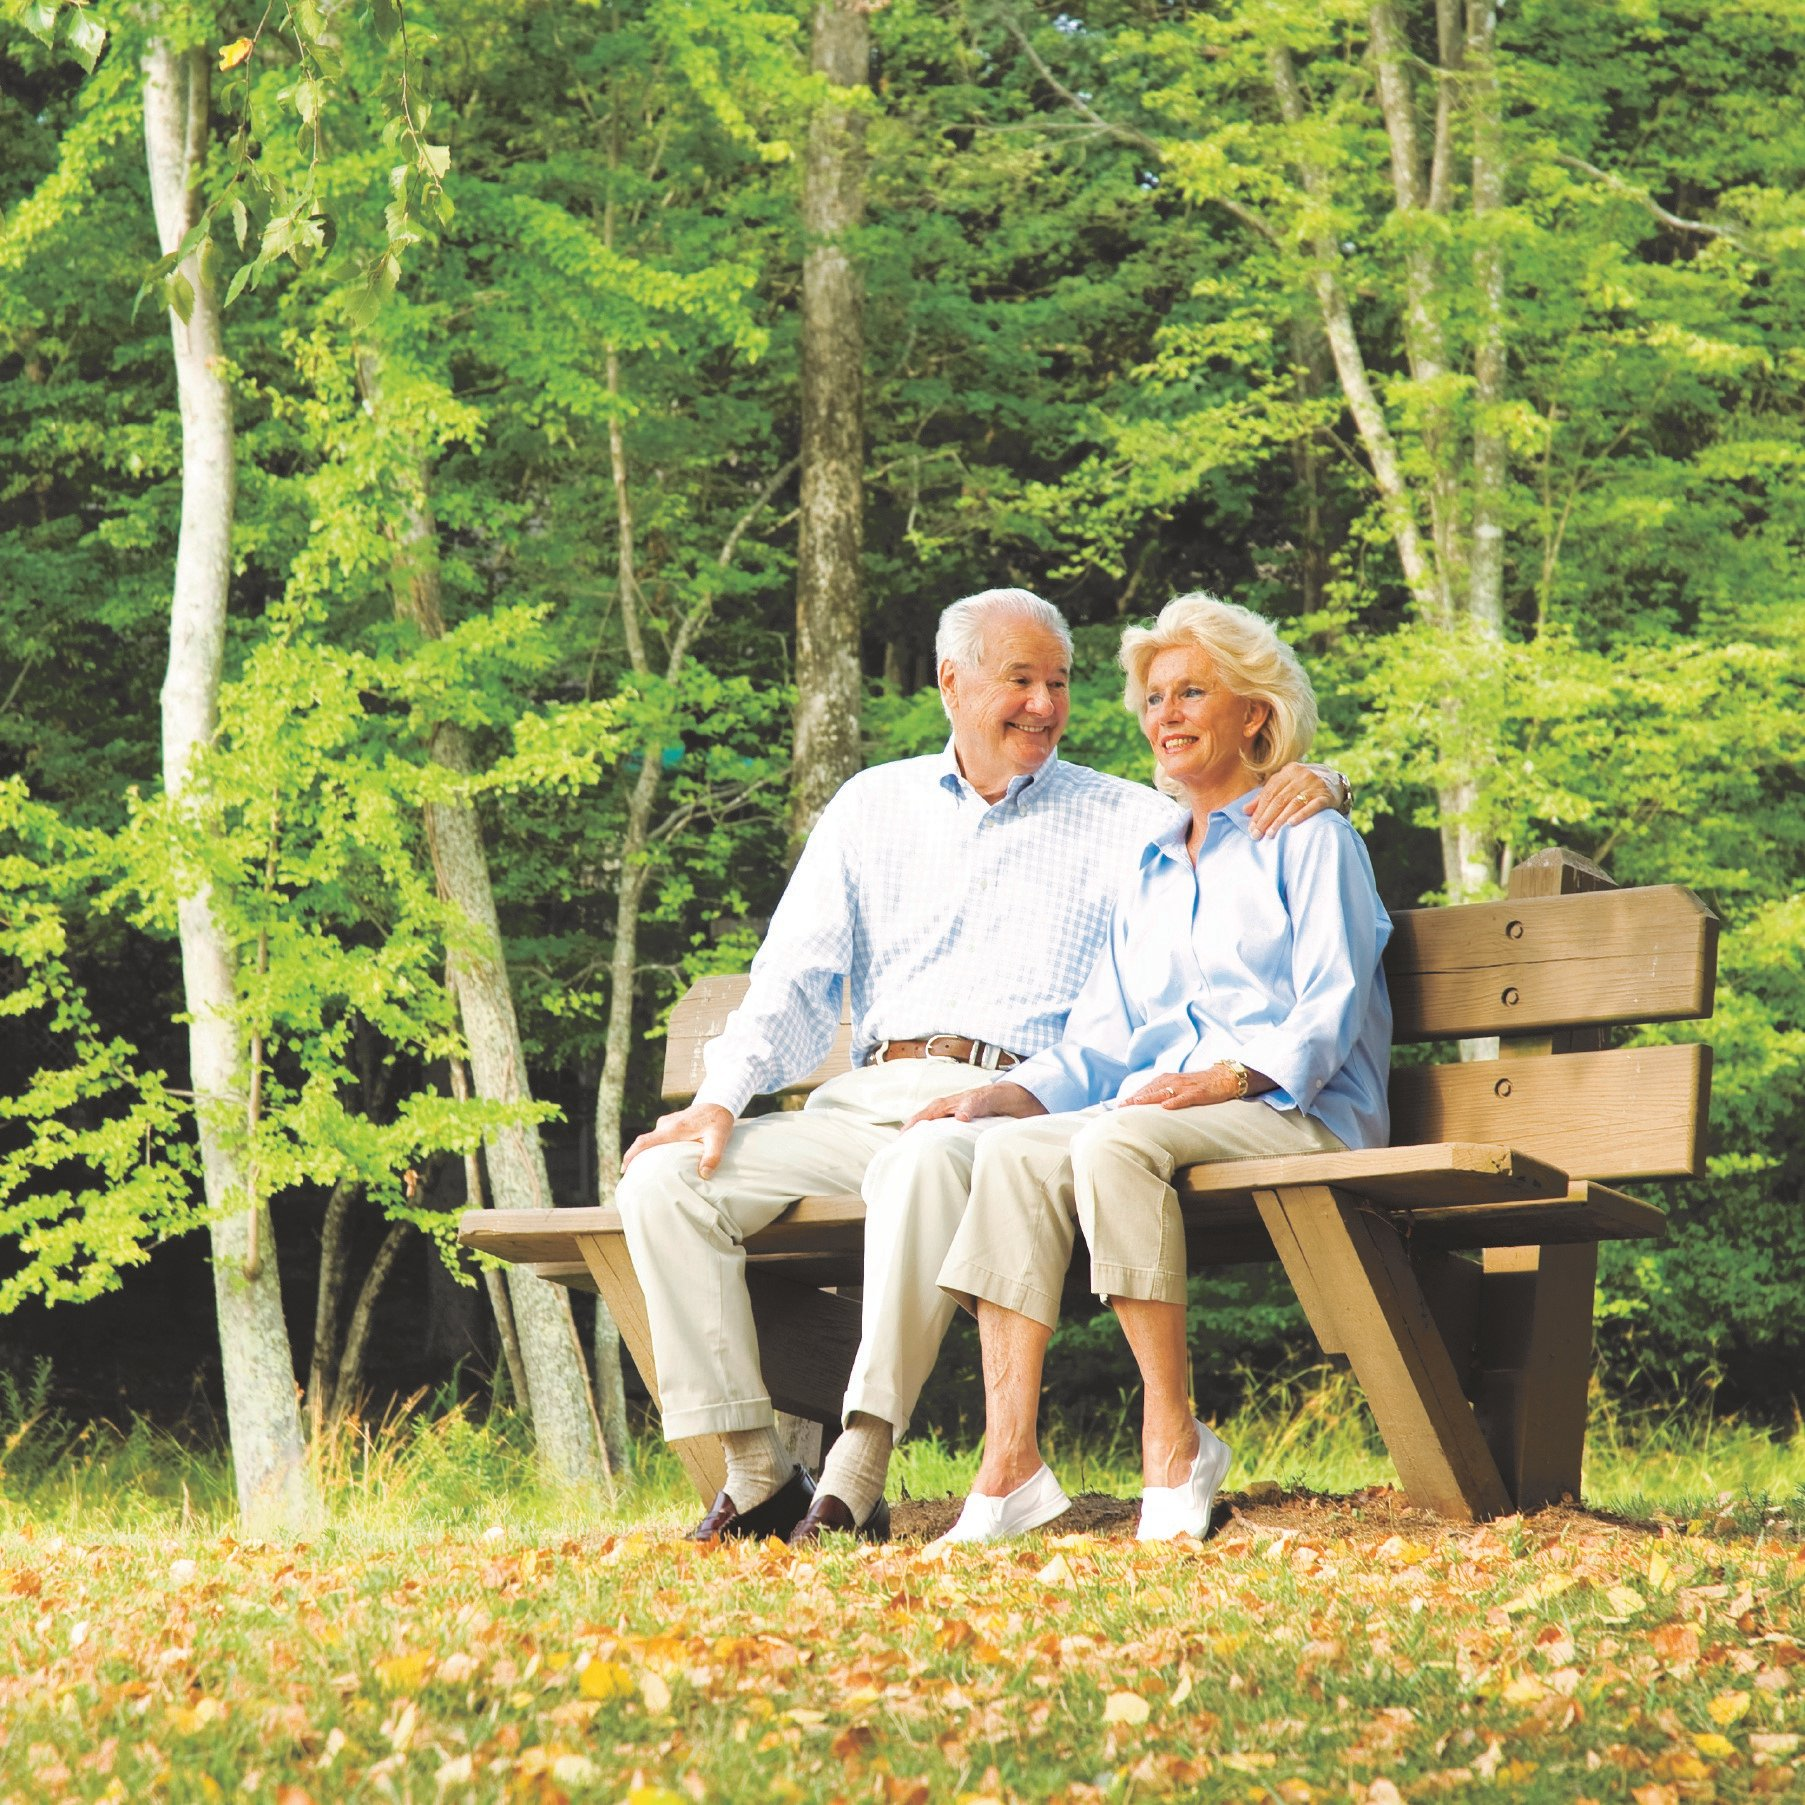 Seniors get the best of life at Pacifica Senior Living Forest Trace